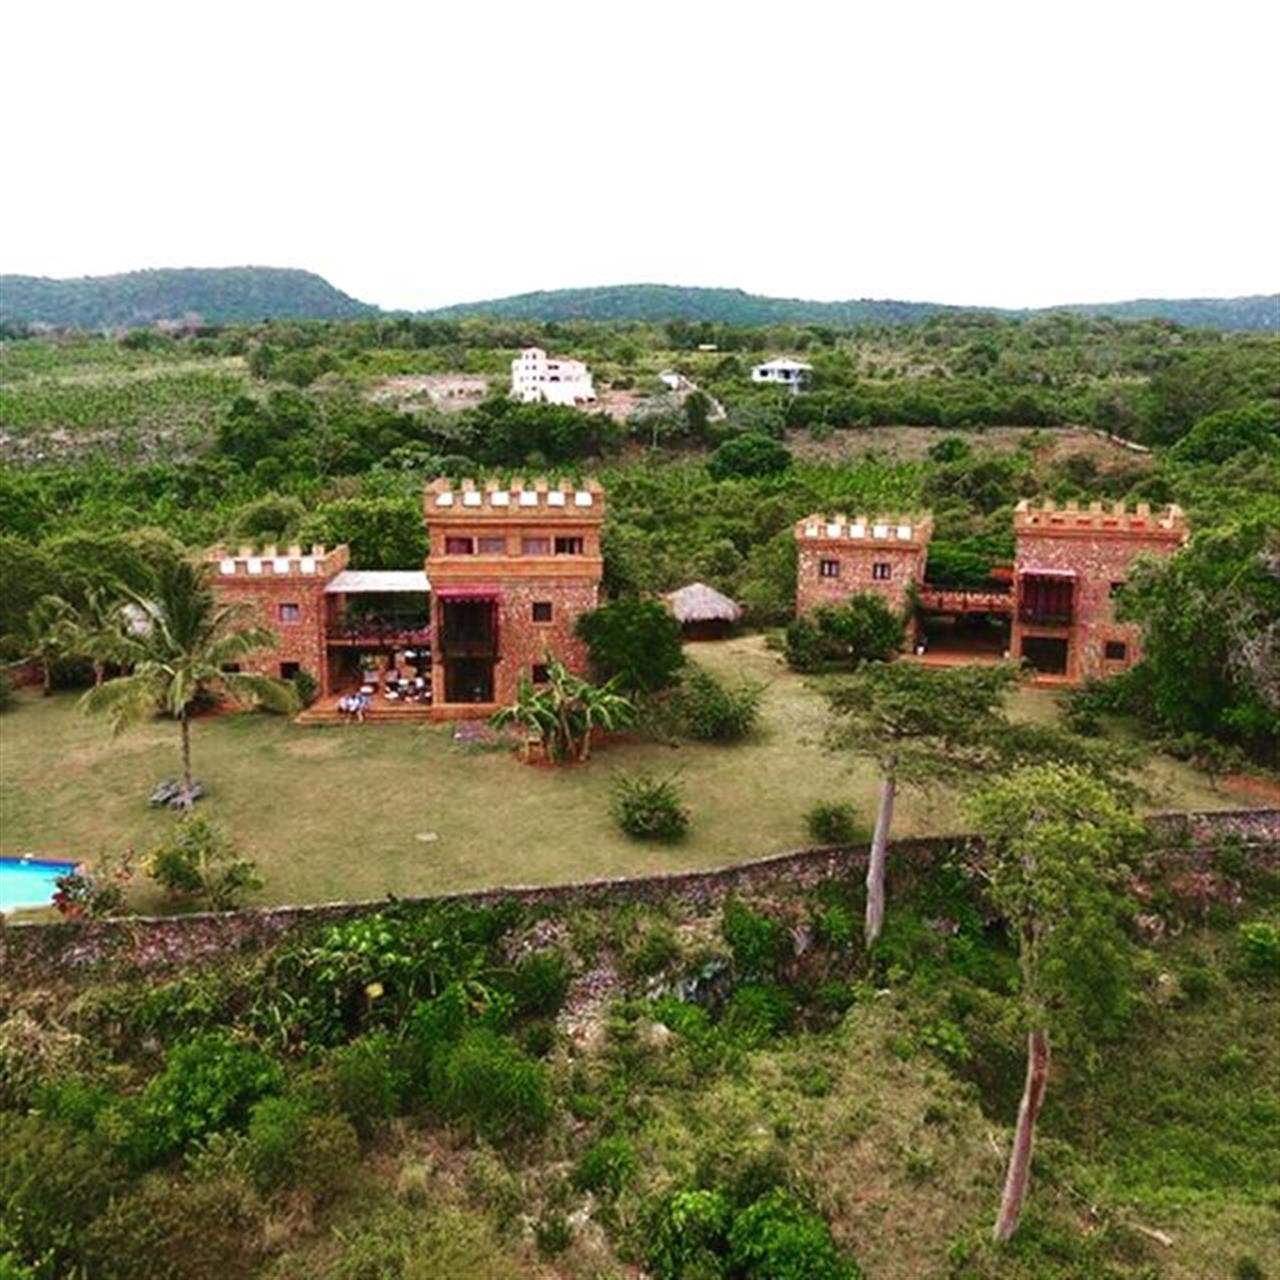 These Twin Houses in Samana - Las Galeras is Select Caribbean Properties newest listing. With views to the Las Galeras Bay and situated on 1 acre makes this property a perfect vacation destination.  #luxuryhome #dominicanrepublicnorthcoast #dominicanrepublicvilla #leadingrelocal #Samana #LasGaleras #Castle #luxuryvillas #luxuryrealestate